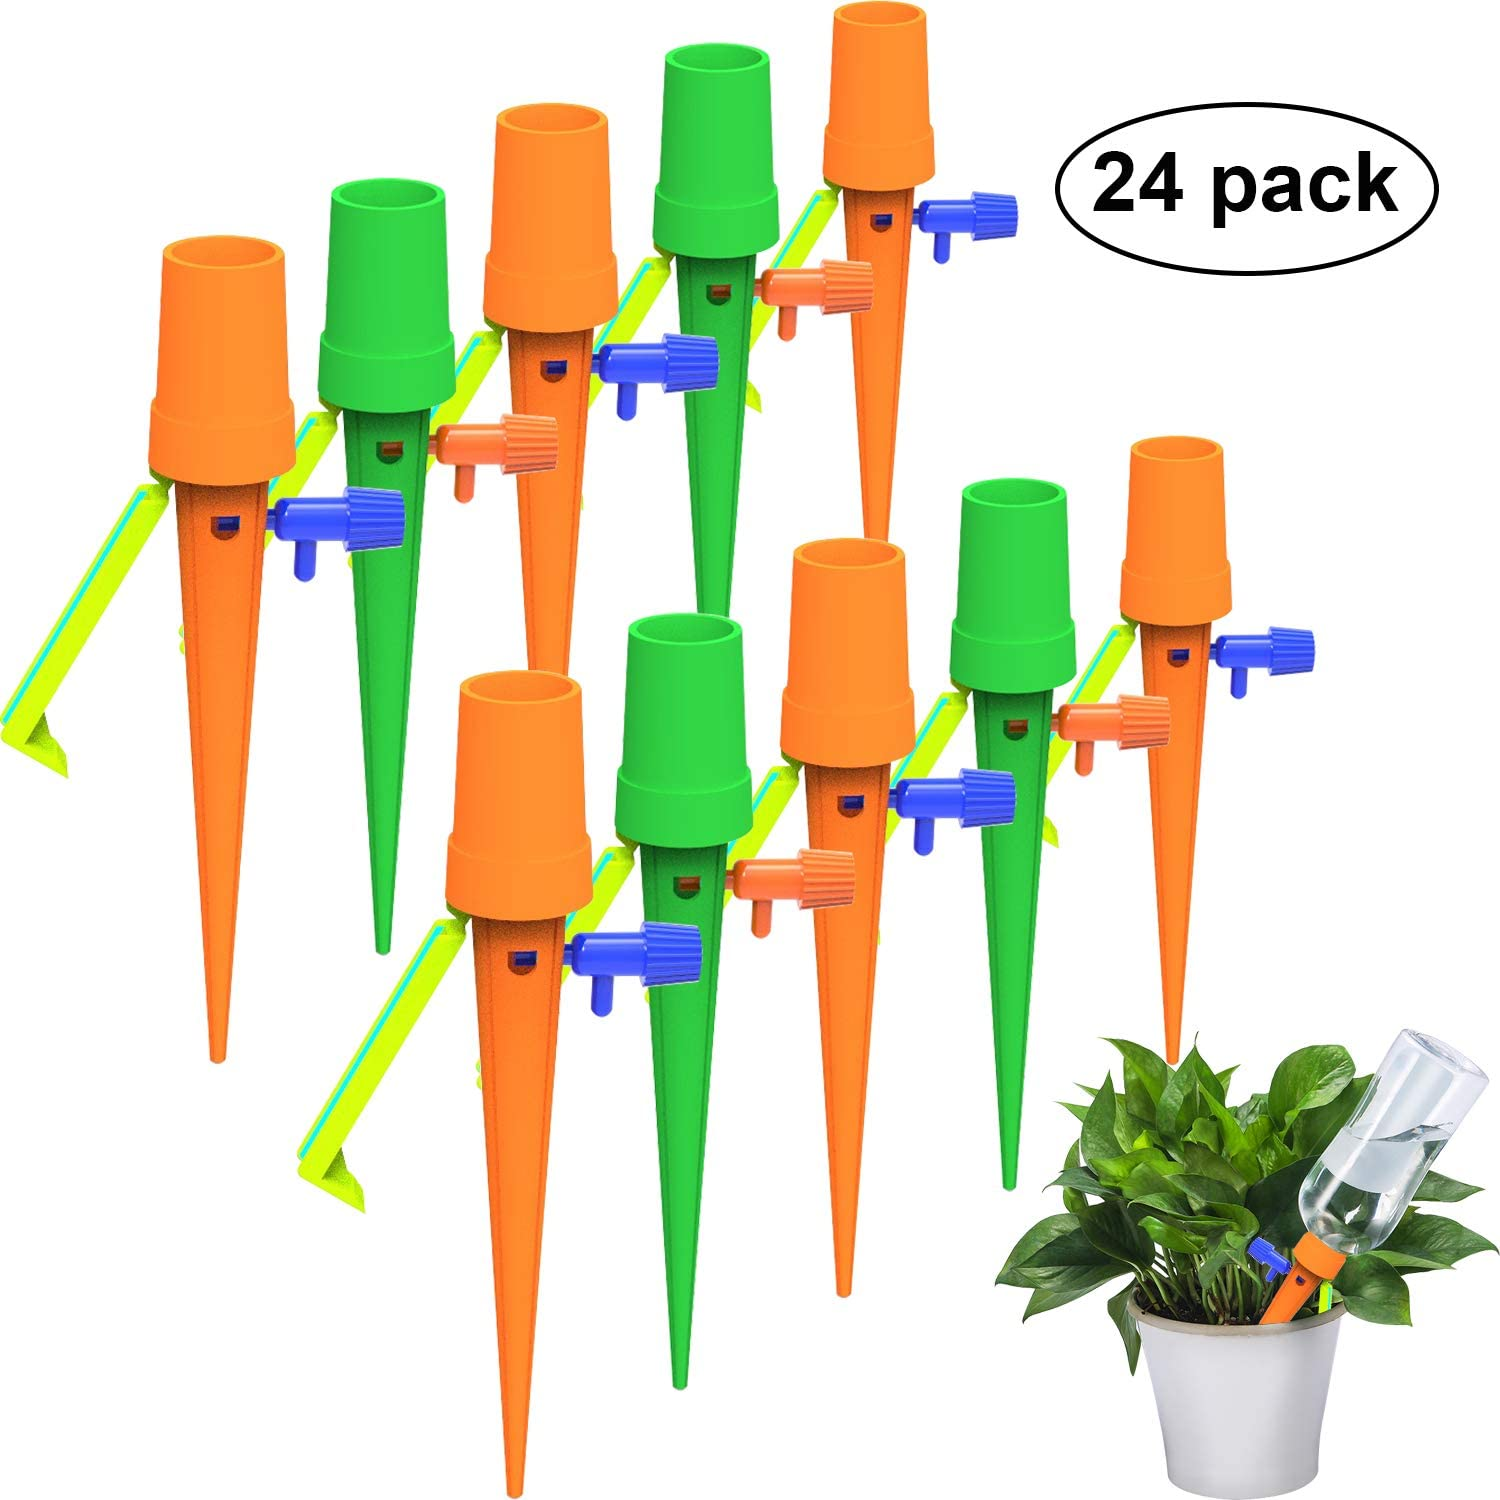 12 Upgrade Design Self Watering Spikes Automatic Watering Devices Adjustable Plant Watering Spikes with Slow Release Control Valve Switch for Indoor Outdoor Plants